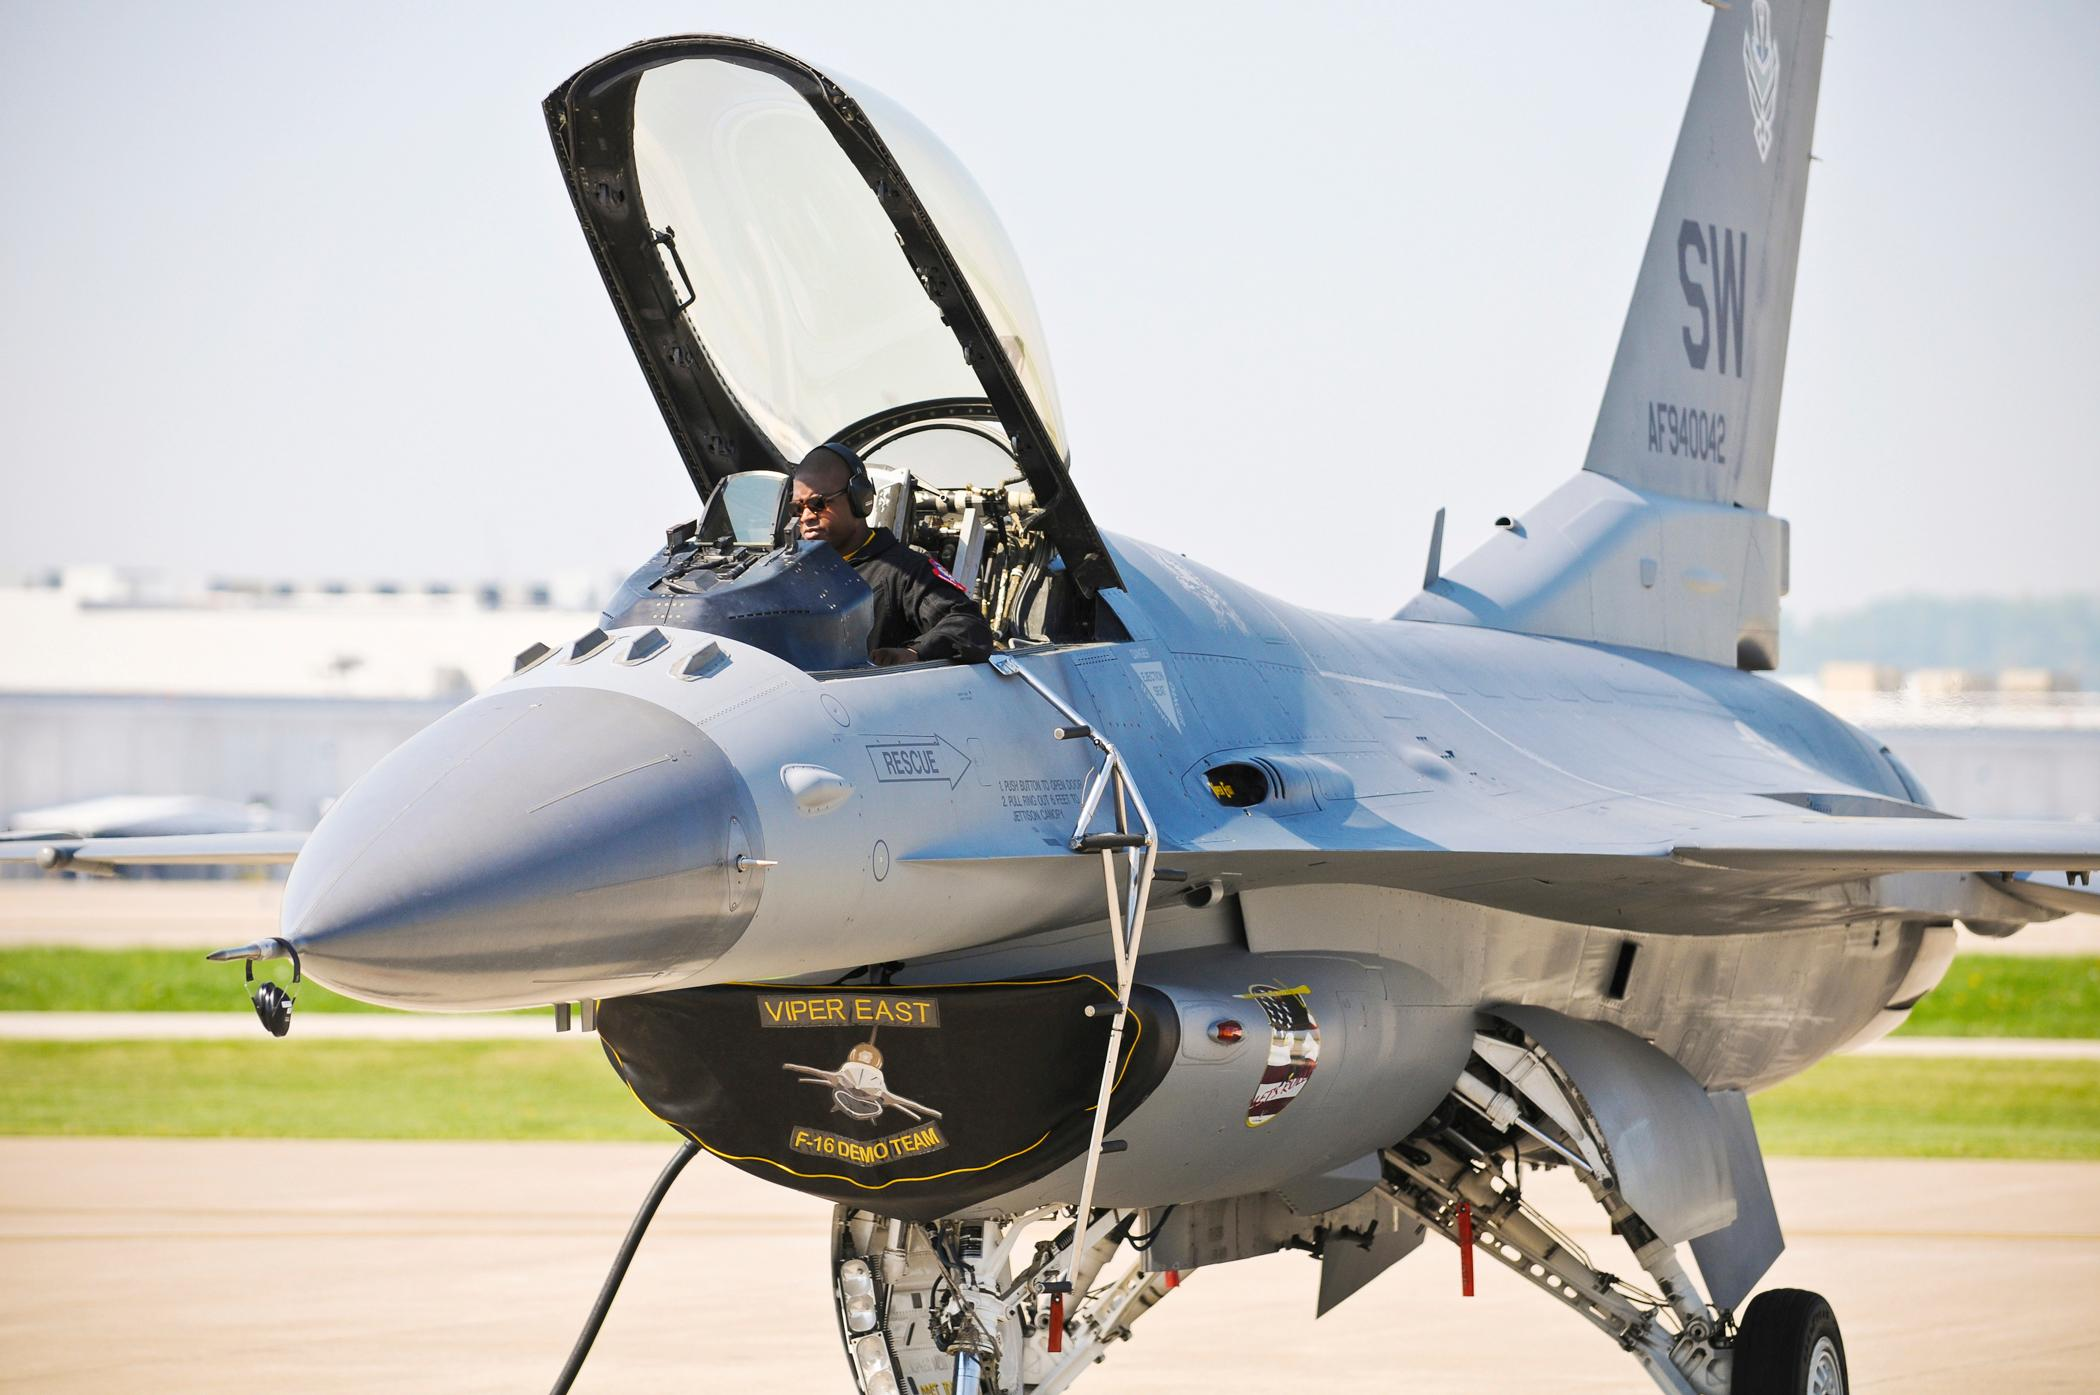 U.S. Air Force F-16 Viper  (U.S. Air Force photo/Senior Airman Maxwell A. Rechel)